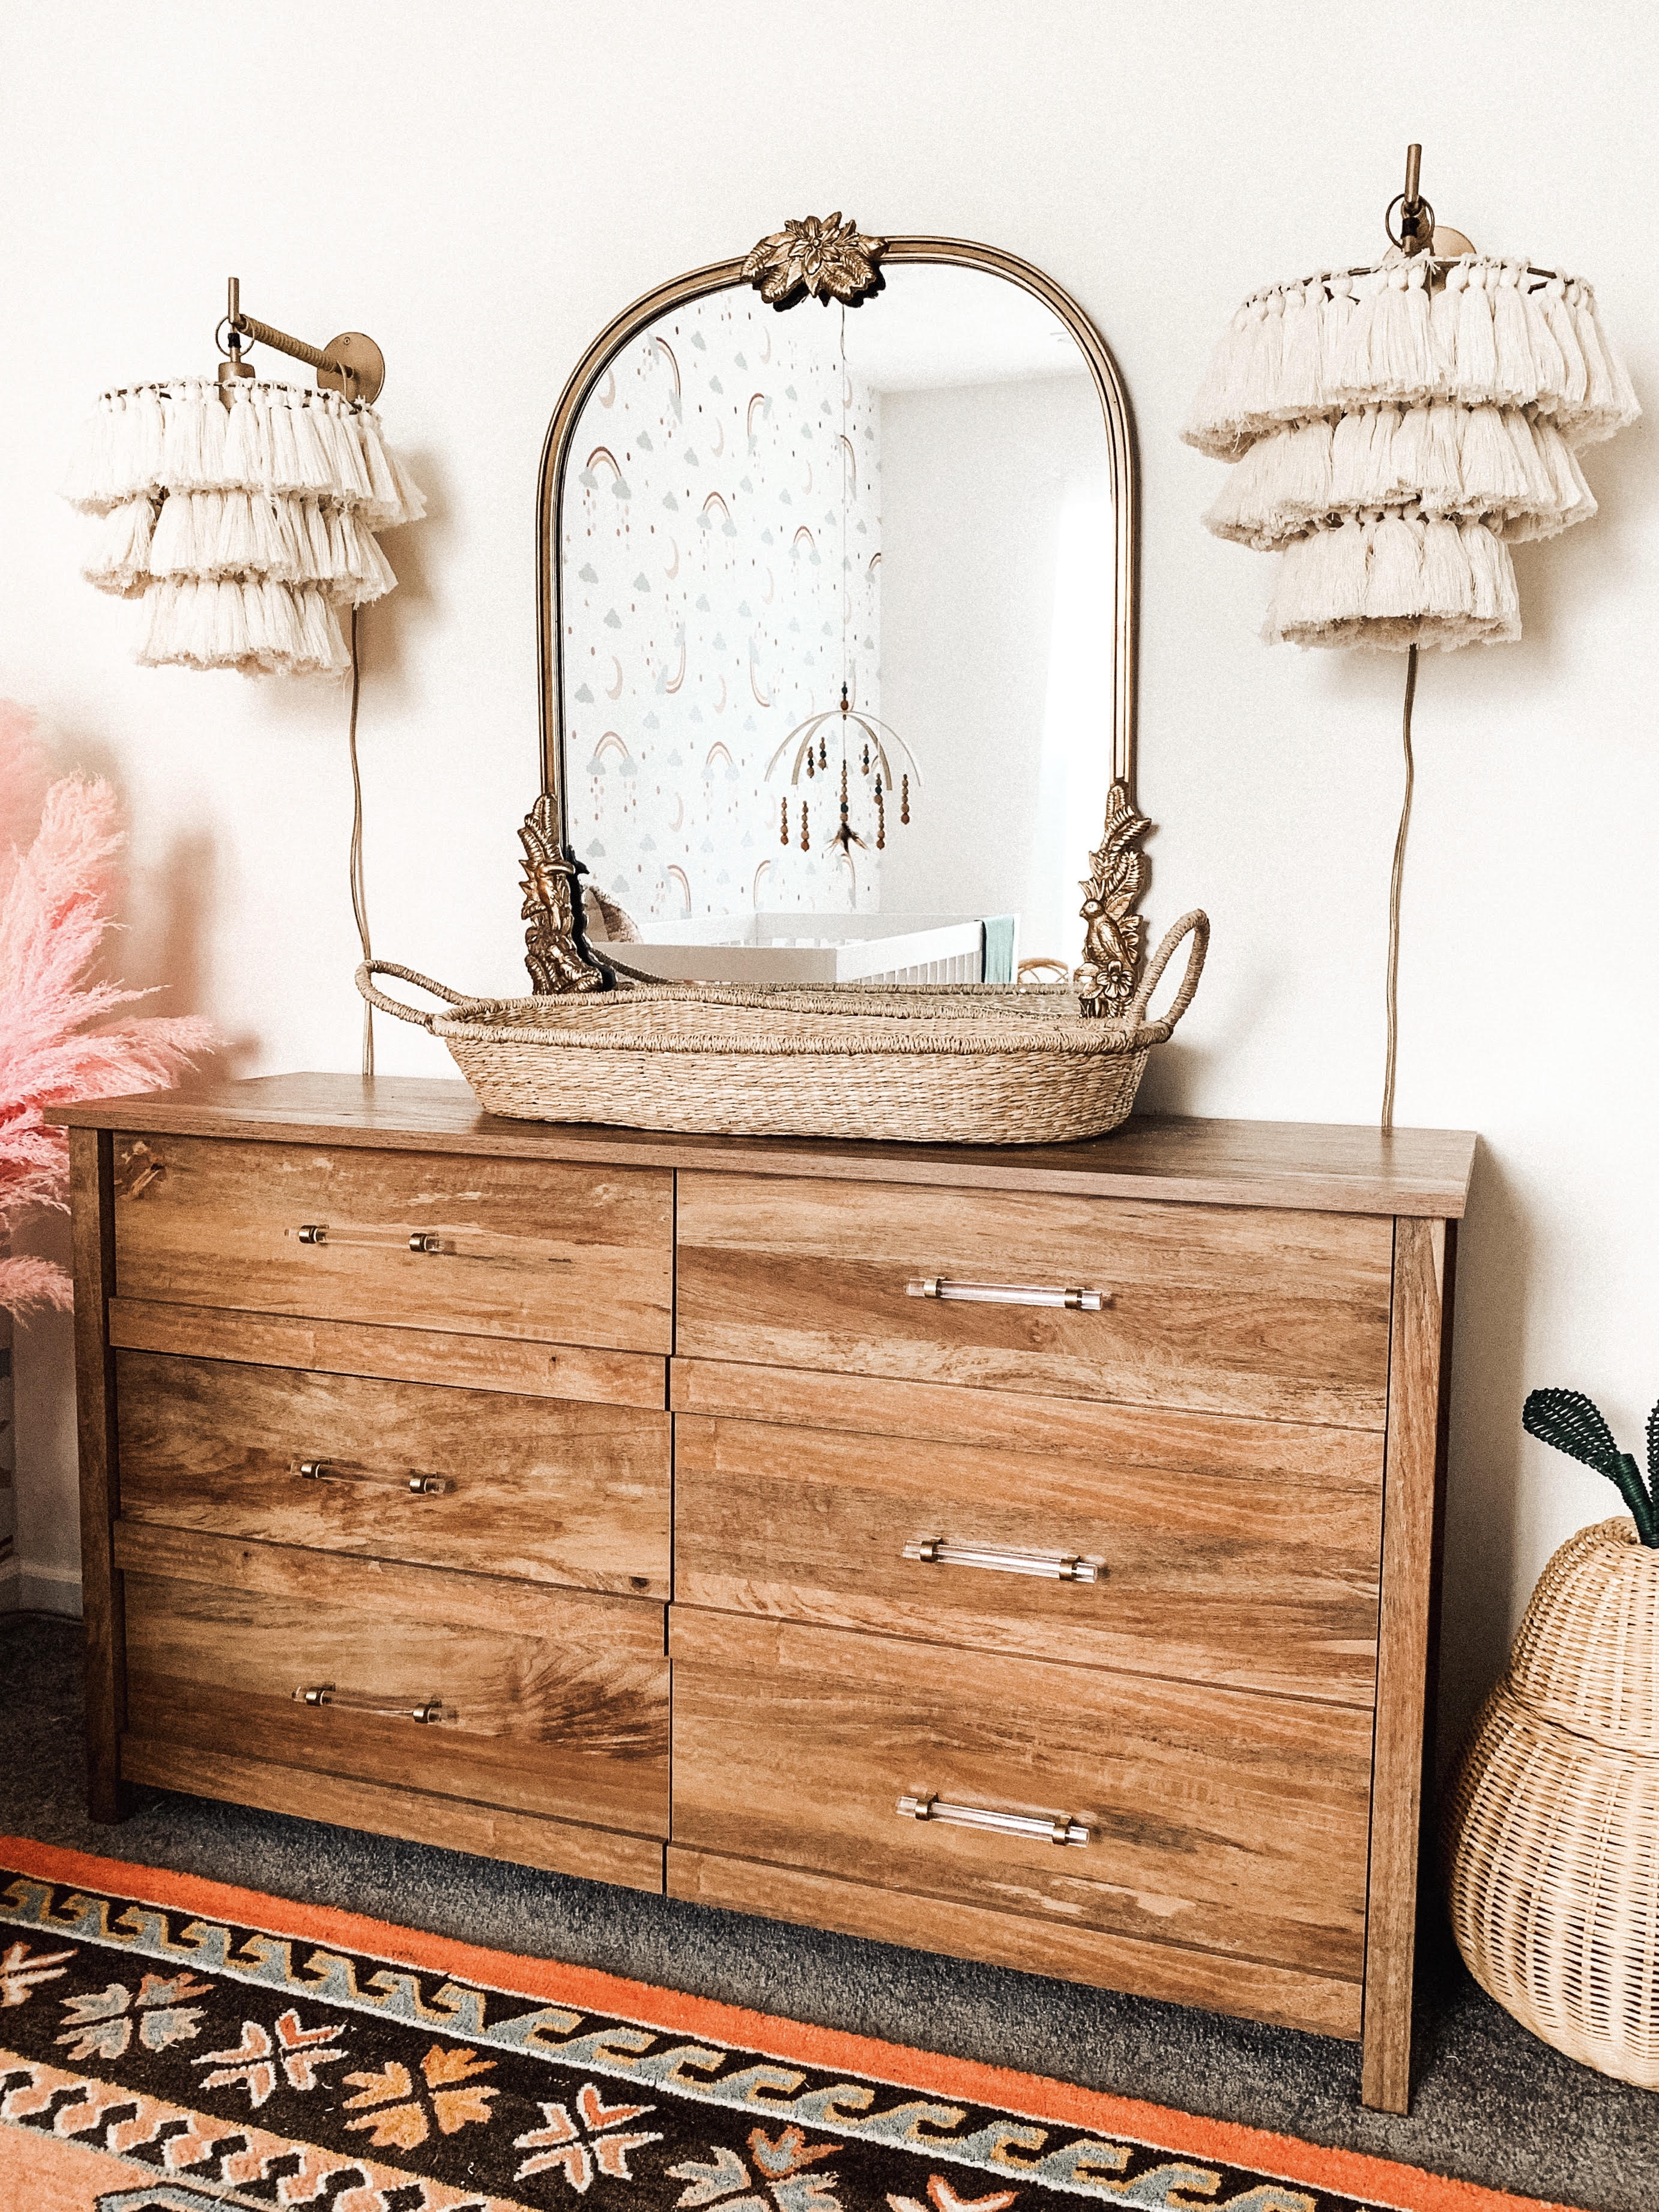 Wood Dresser with Changing Basket and Tassel Wall Pendants